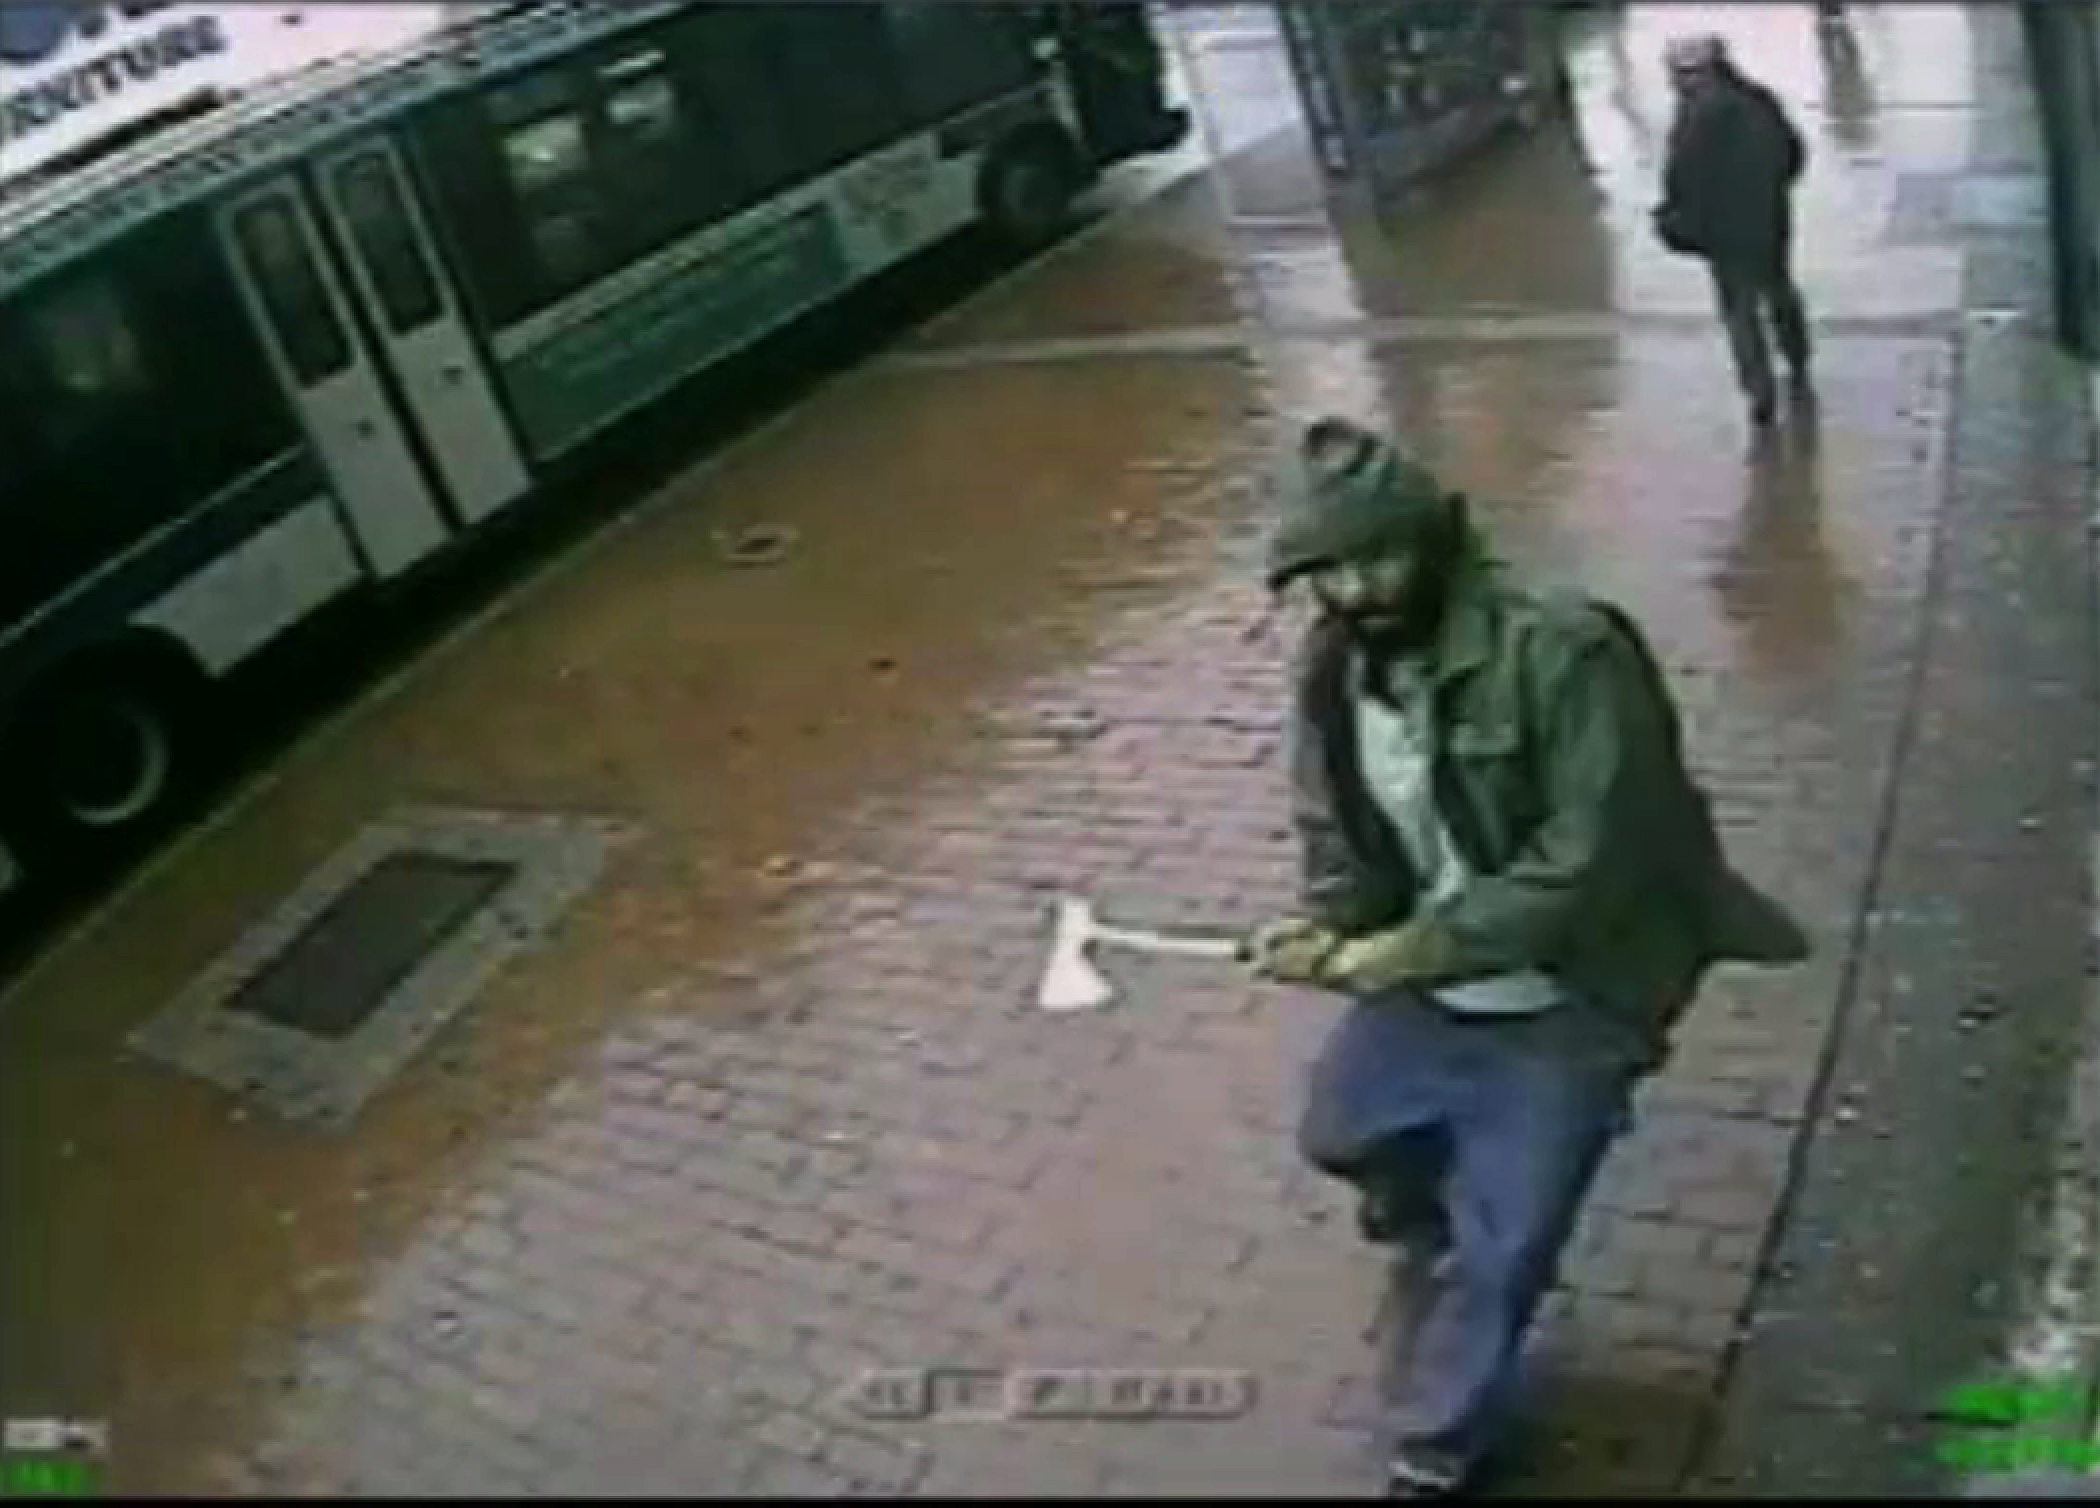 In this frame grab taken from video provided by the New York Police Department, an unidentified man approaches New York City police officers with a hatchet, Thursday, Oct. 23, 2014, in the Queens borough of New York.